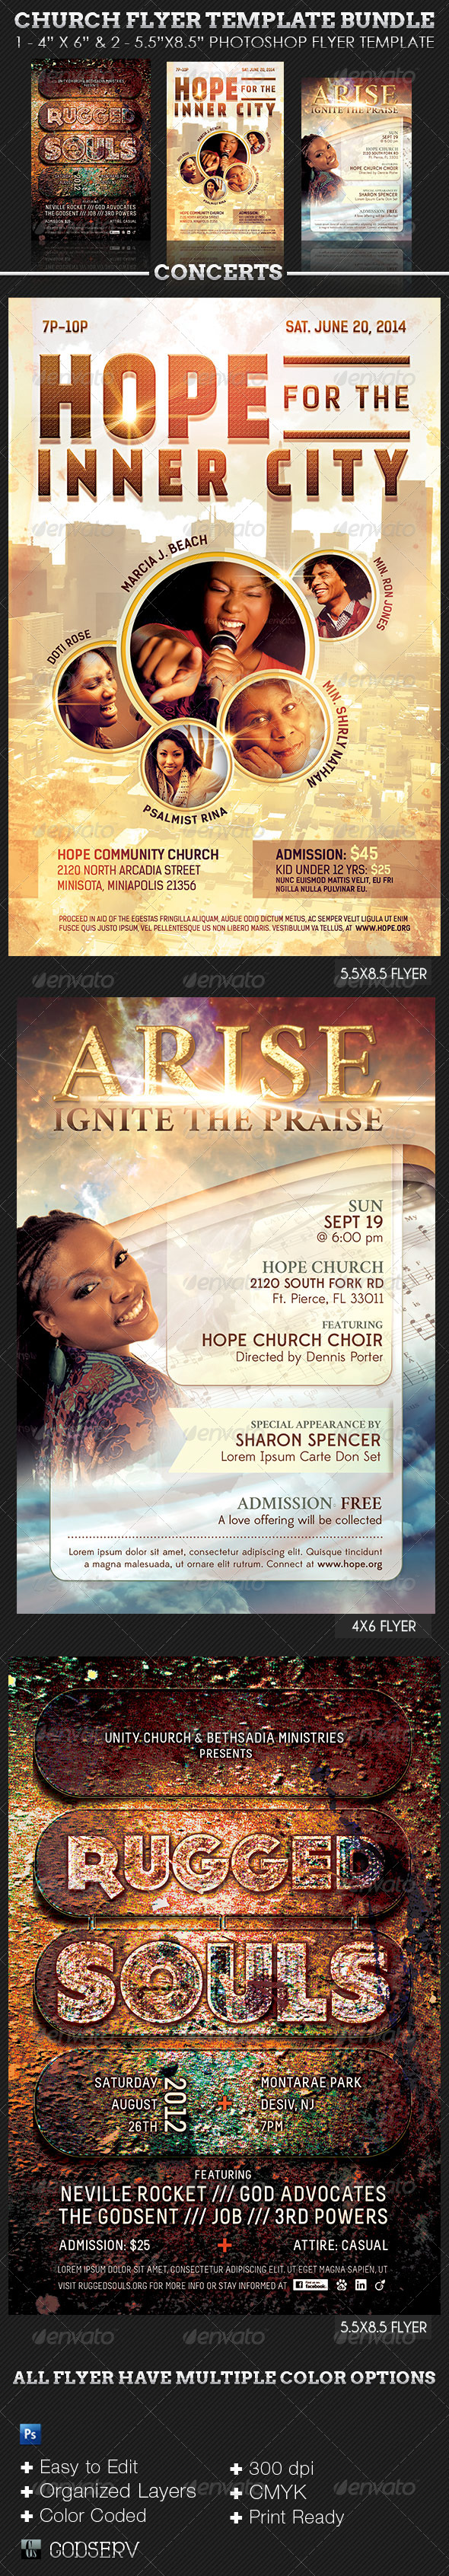 Church Concert Flyer Template Bundle - Concerts Events